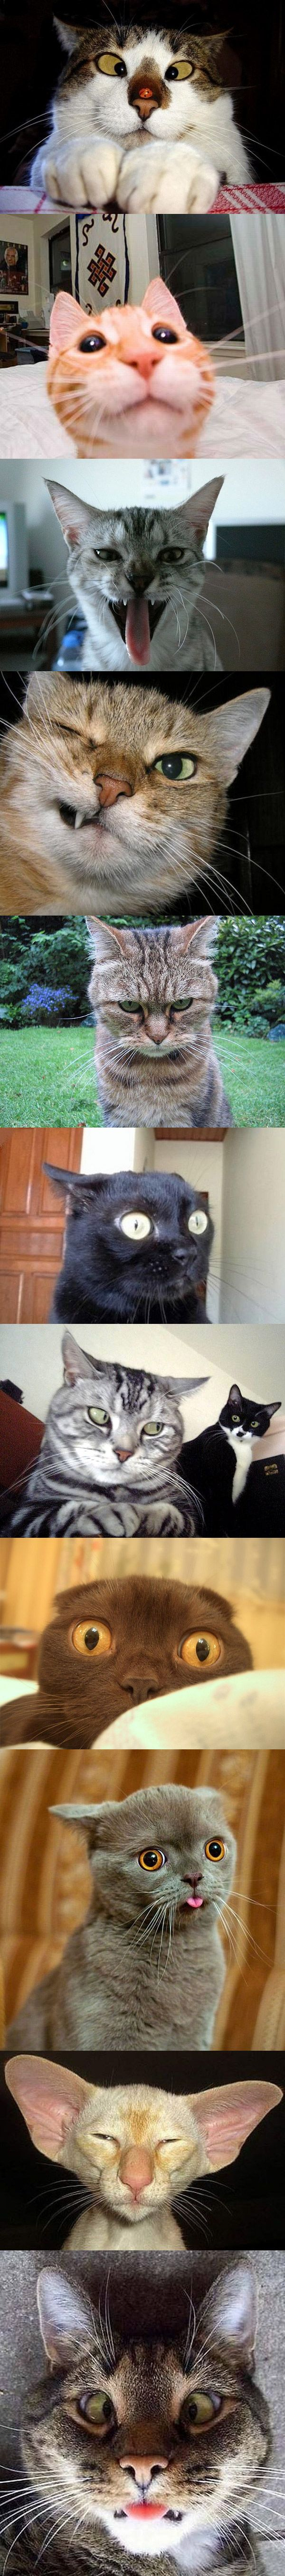 Cats making stupid faces